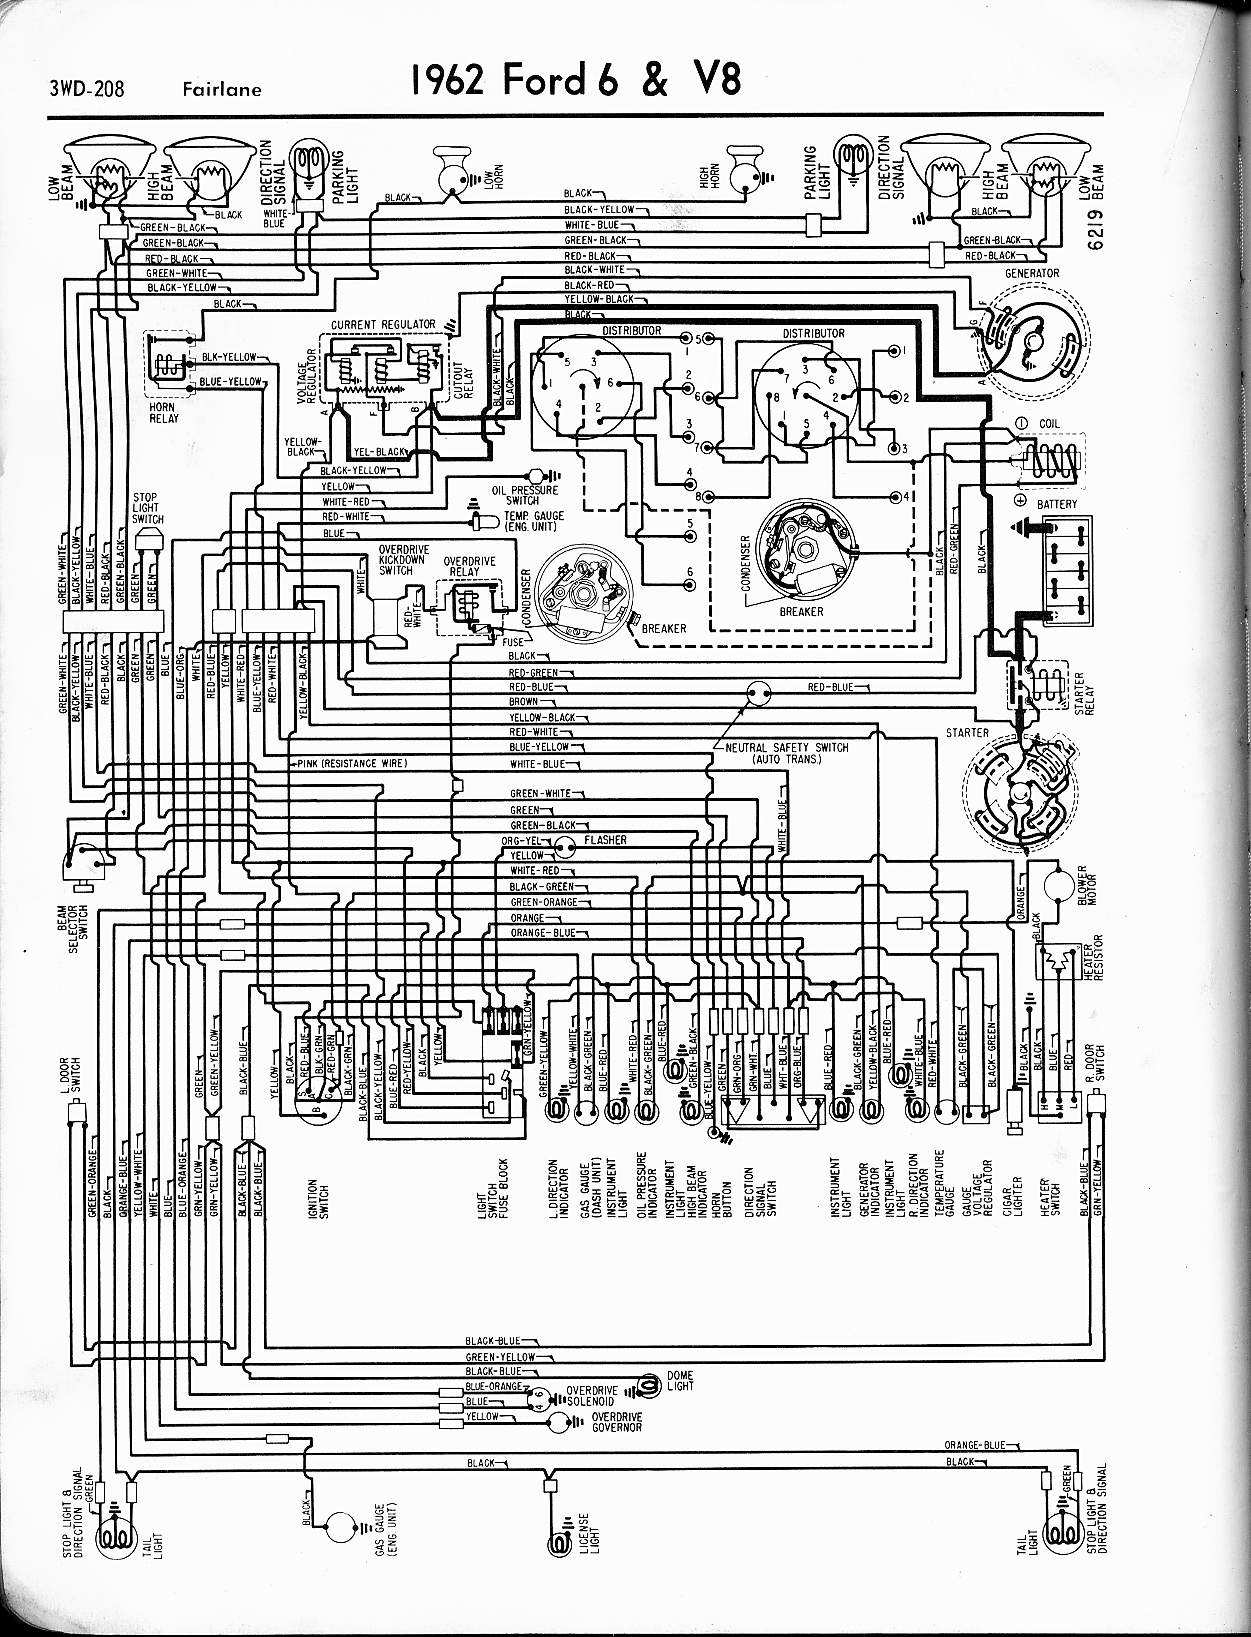 MWire5765 208 57 65 ford wiring diagrams  at alyssarenee.co